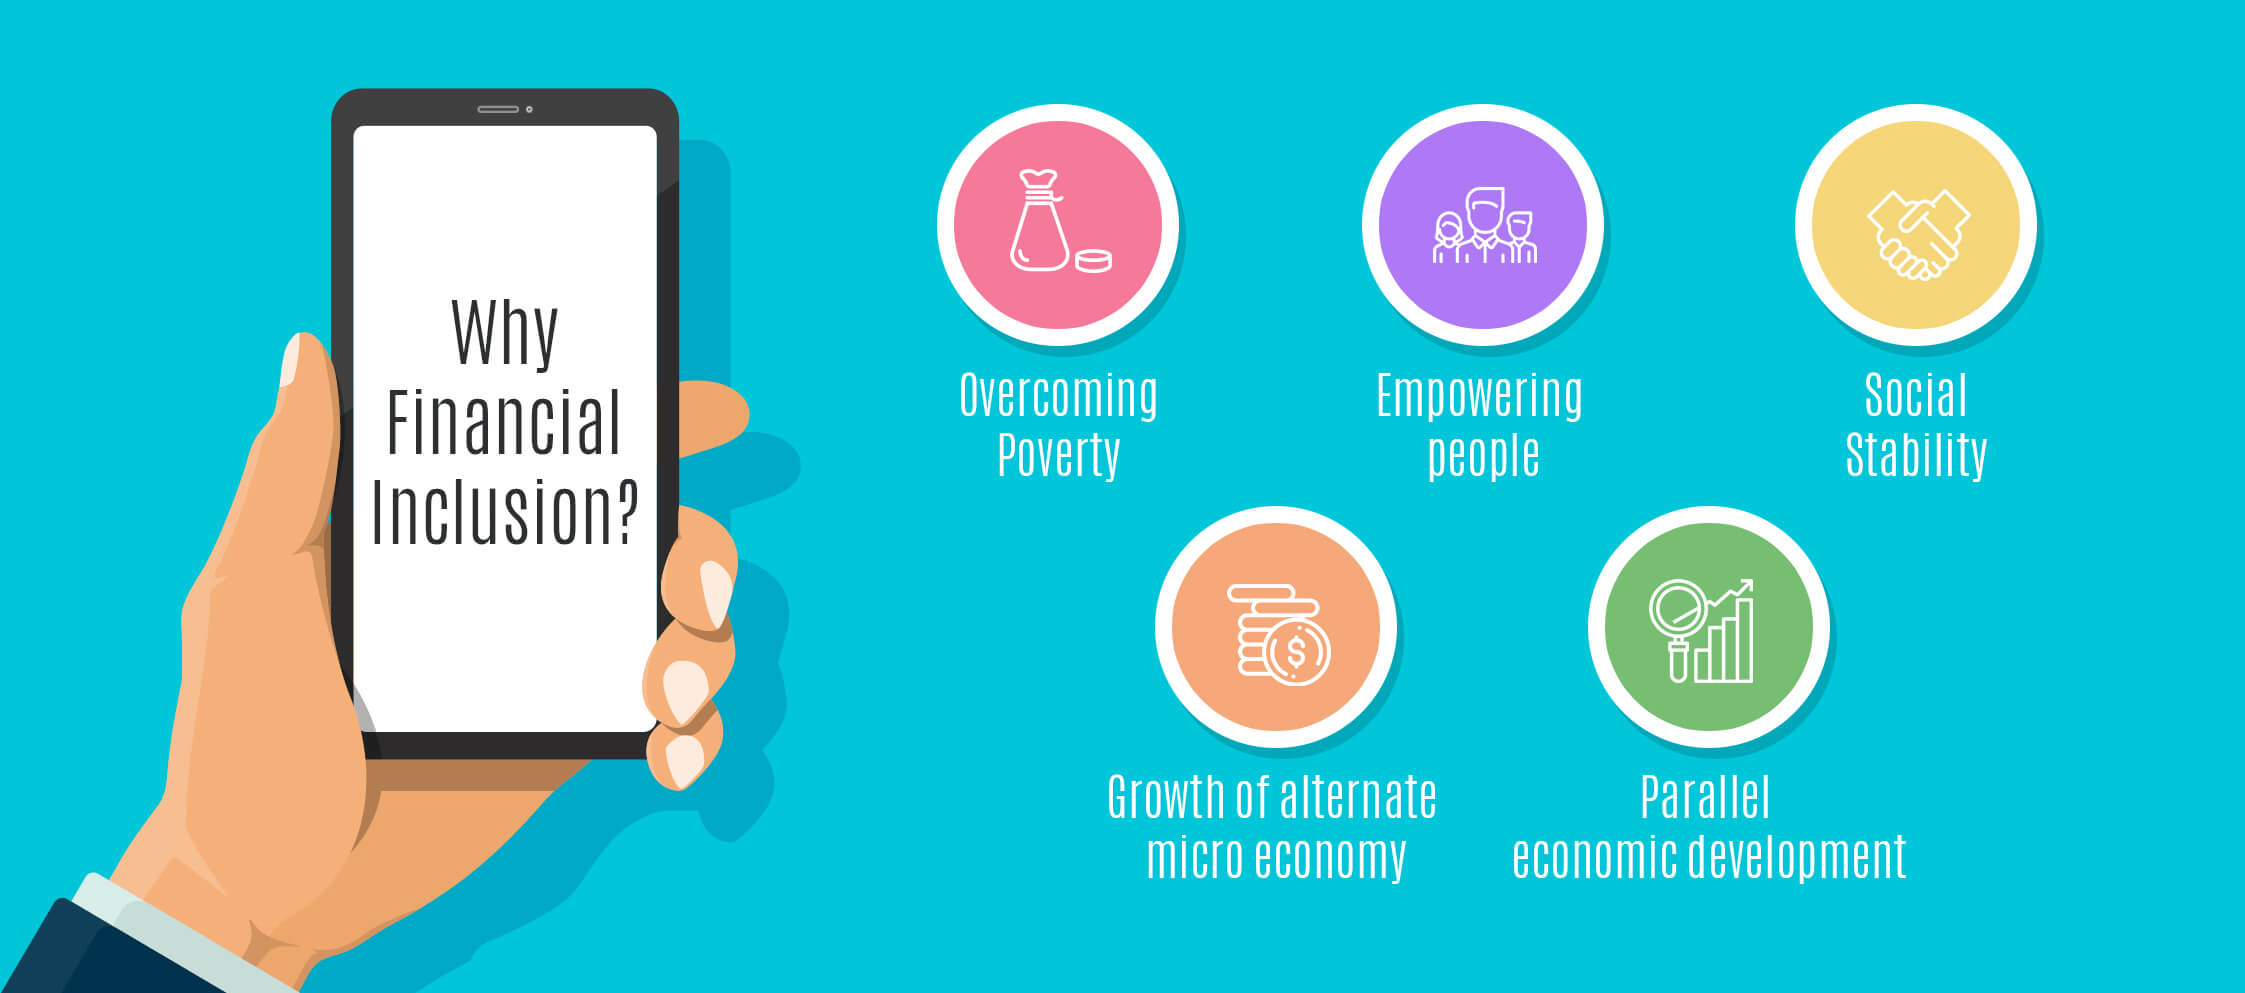 Why Financial Inclusion